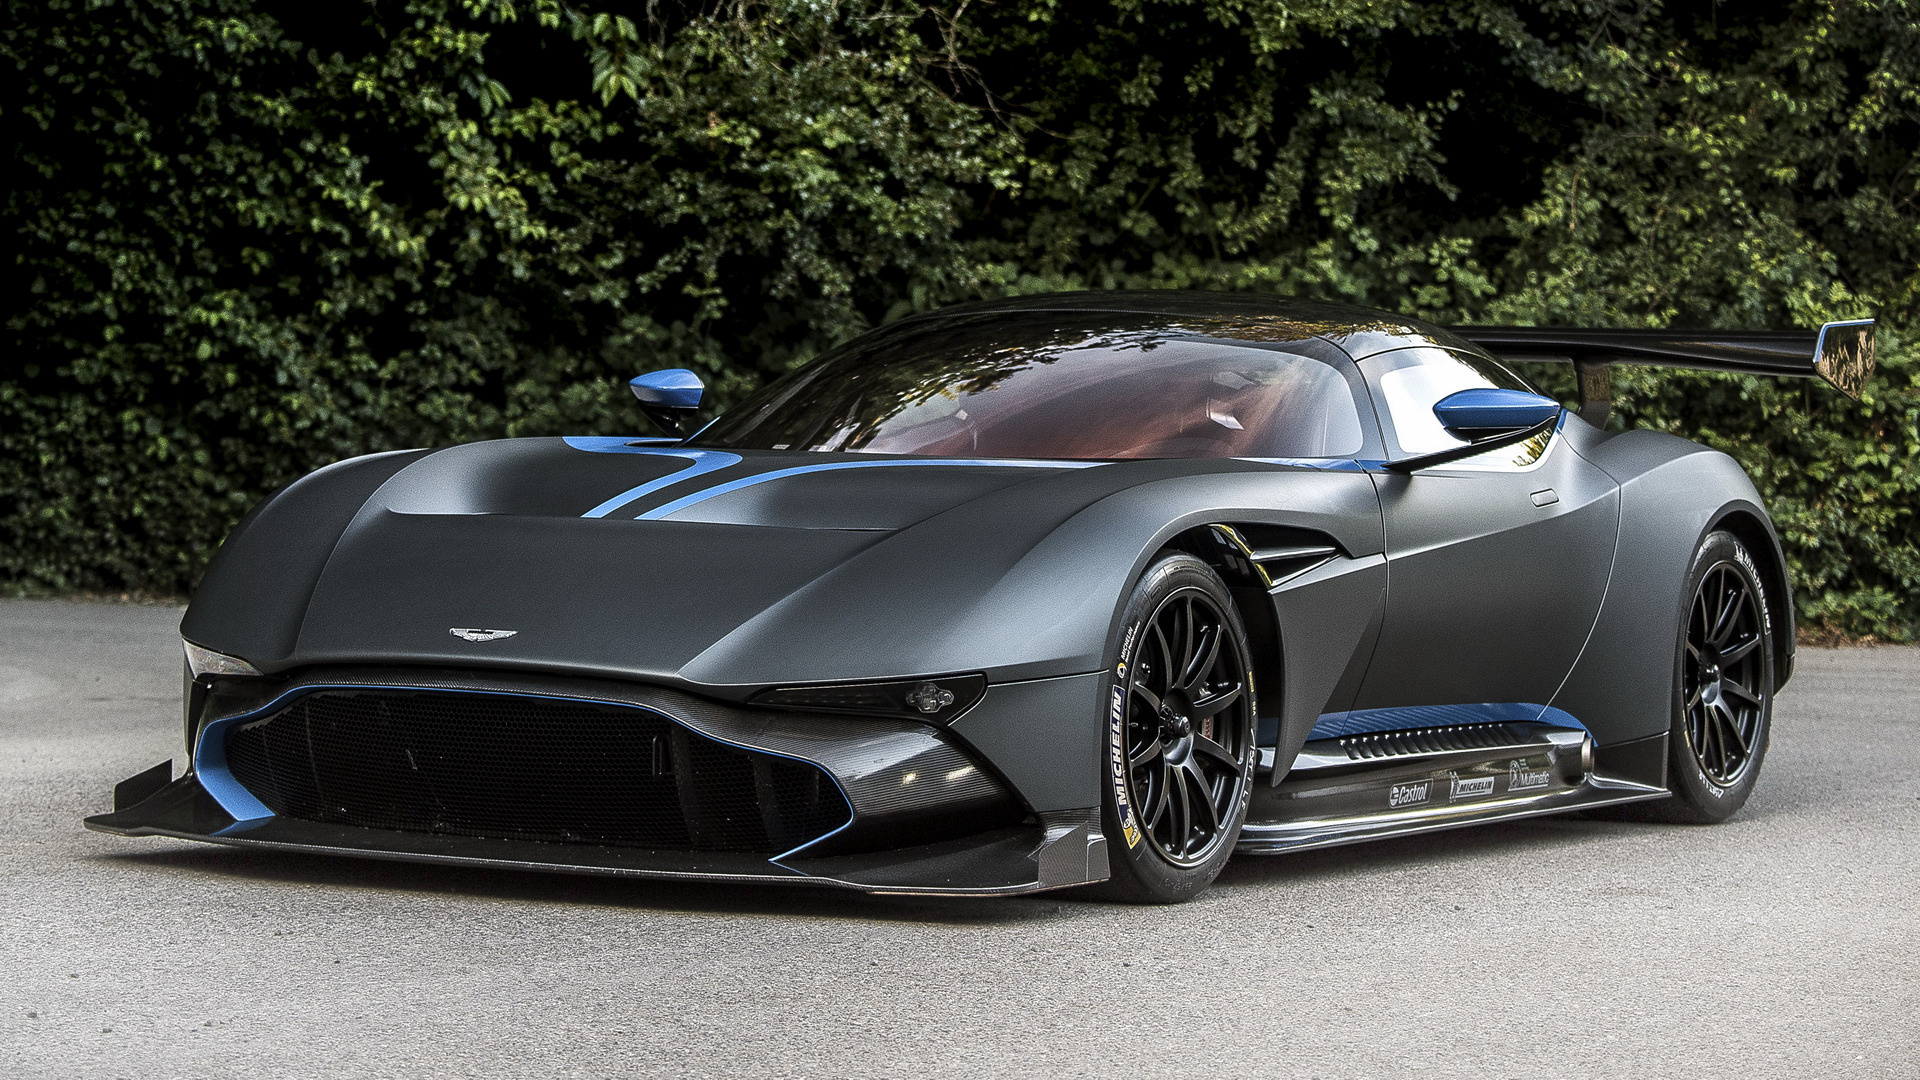 2015 Aston Martin Vulcan - Wallpapers and HD Images | Car ...